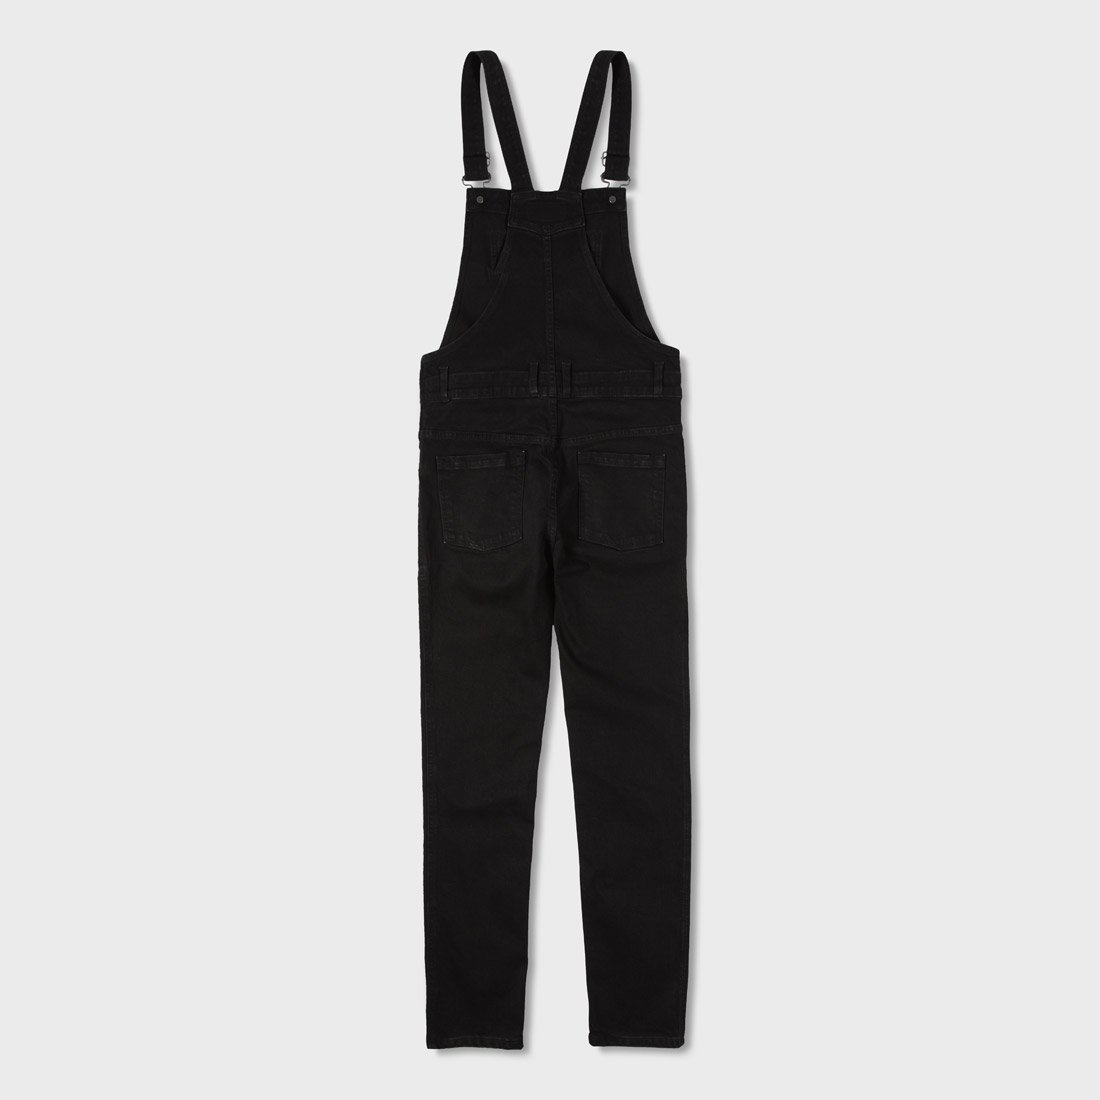 Atwyld Women's Sector Overalls Black